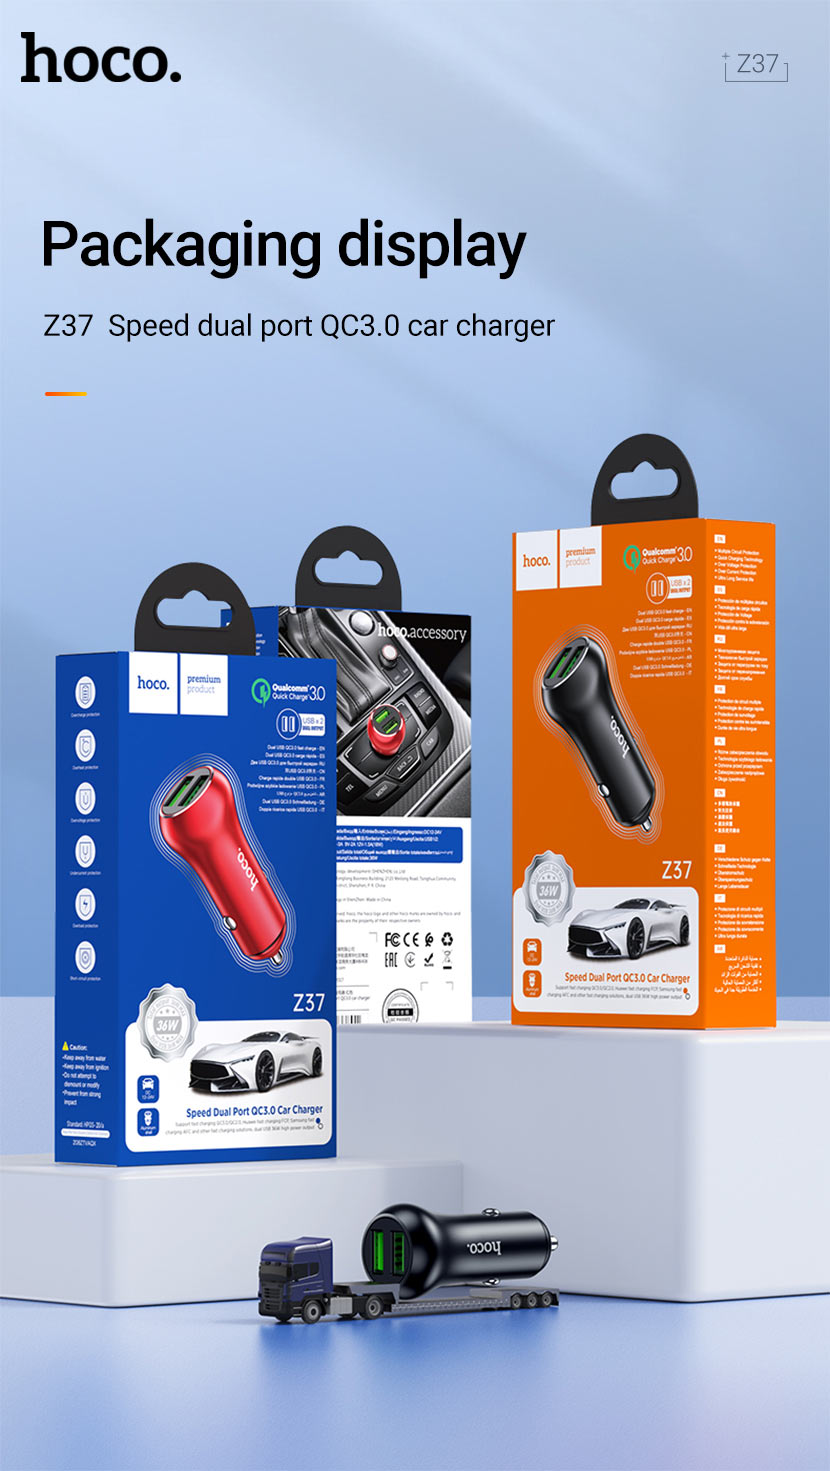 hoco news z37 sharp speed dual port qc3 car charger package en